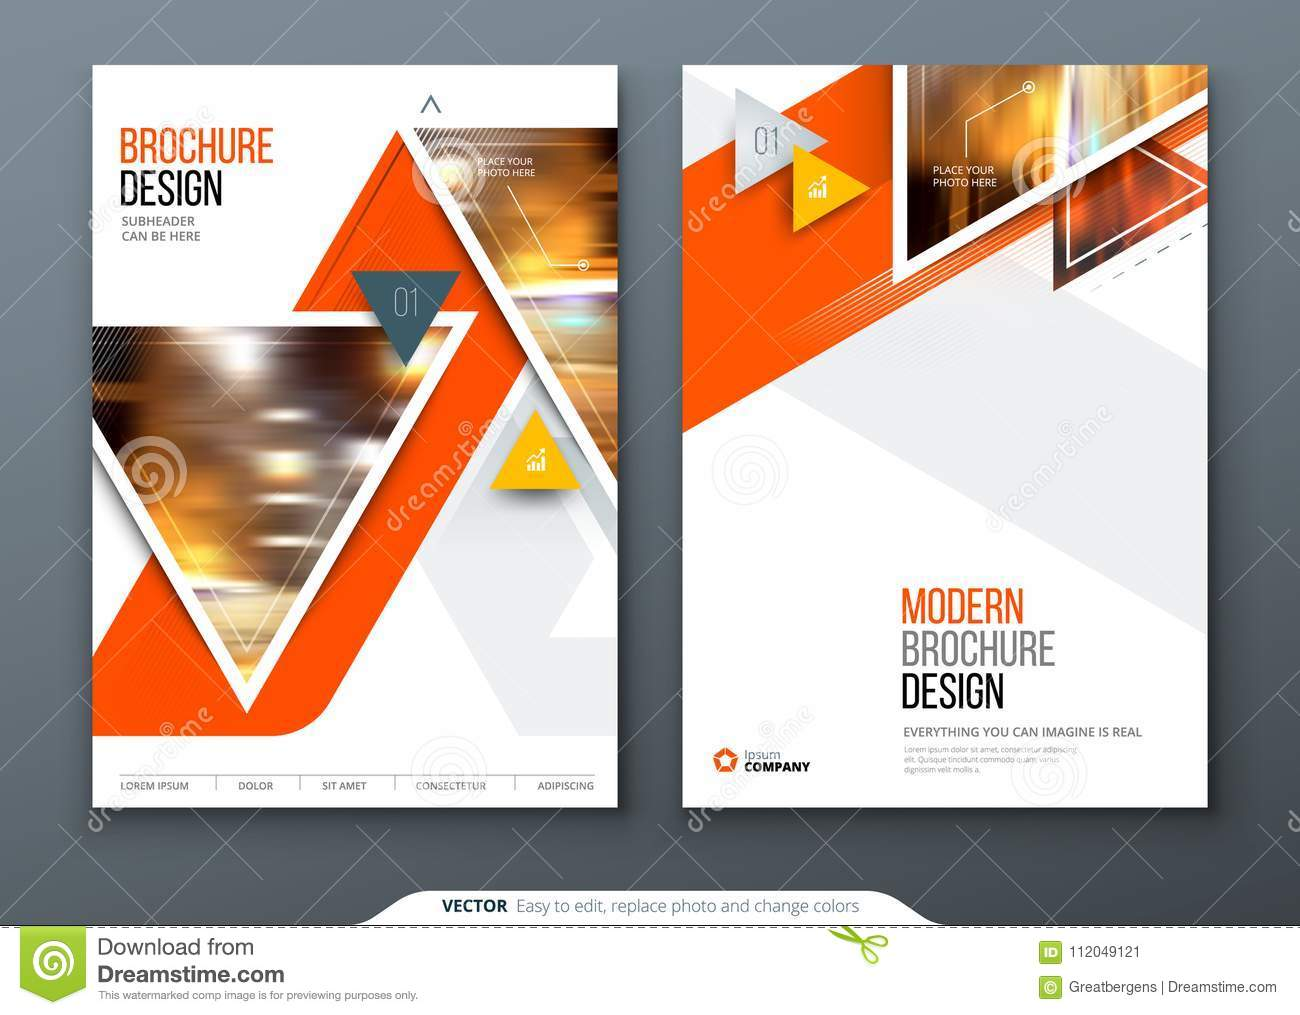 brochure template layout design corporate business annual report catalog magazine flyer mockup creative modern bank cover